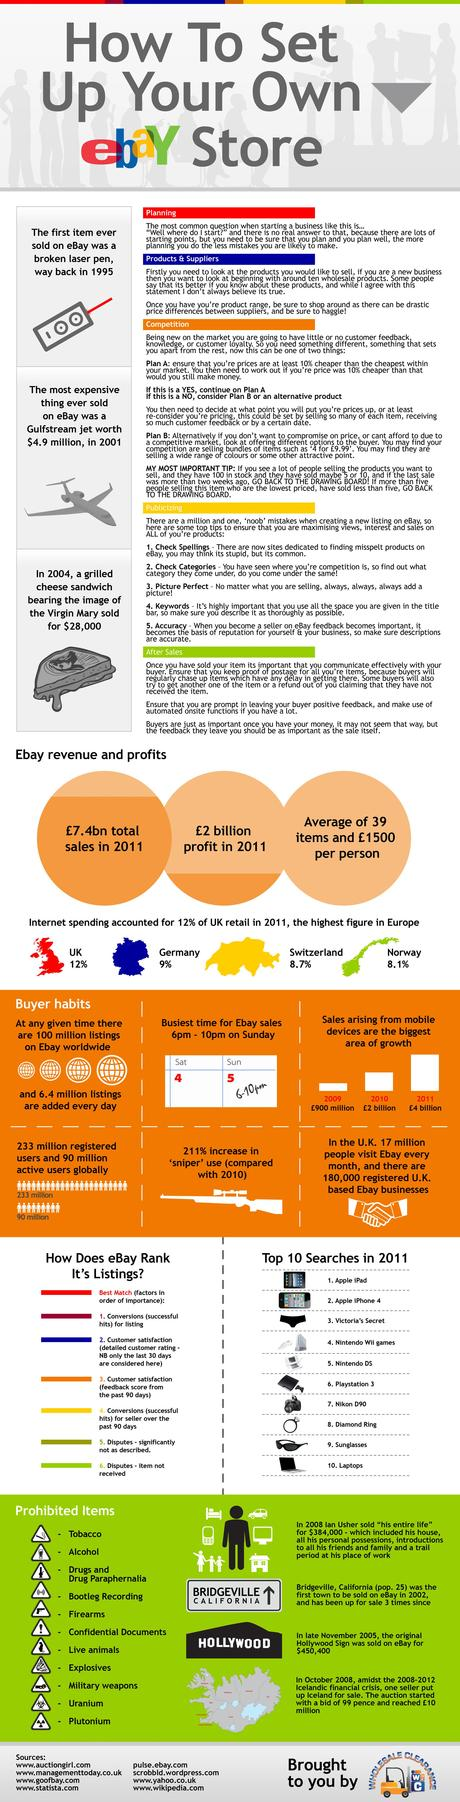 Infographic on Setting Up An Ebay Store